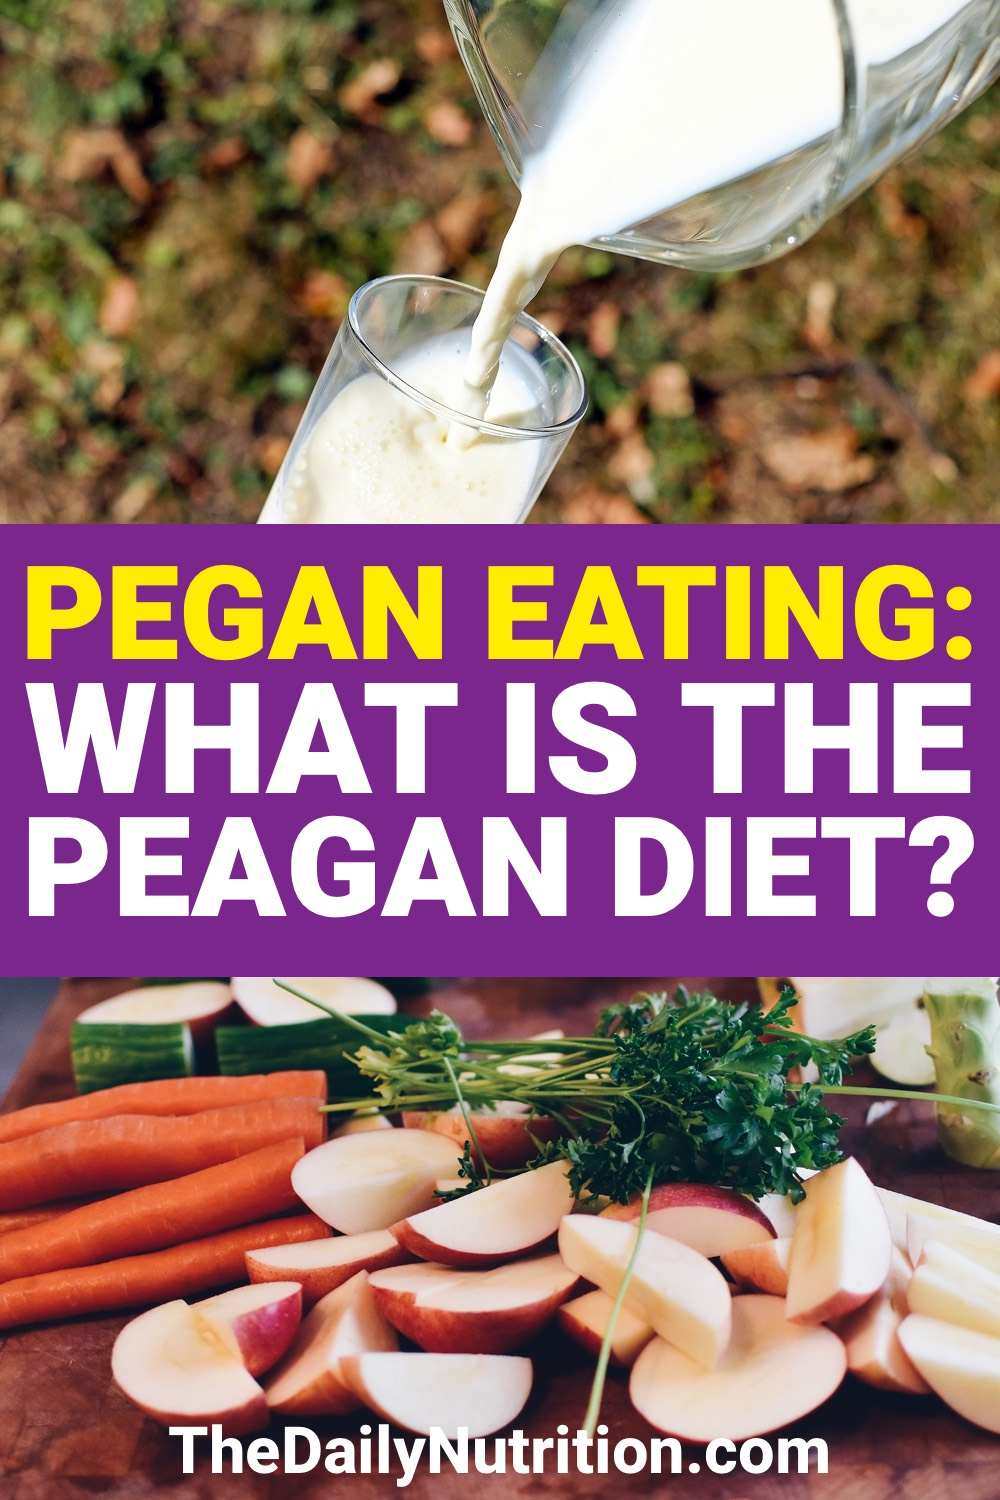 What is the Pegan Diet? What is Pegan eating? Find out the answers to these questions here.